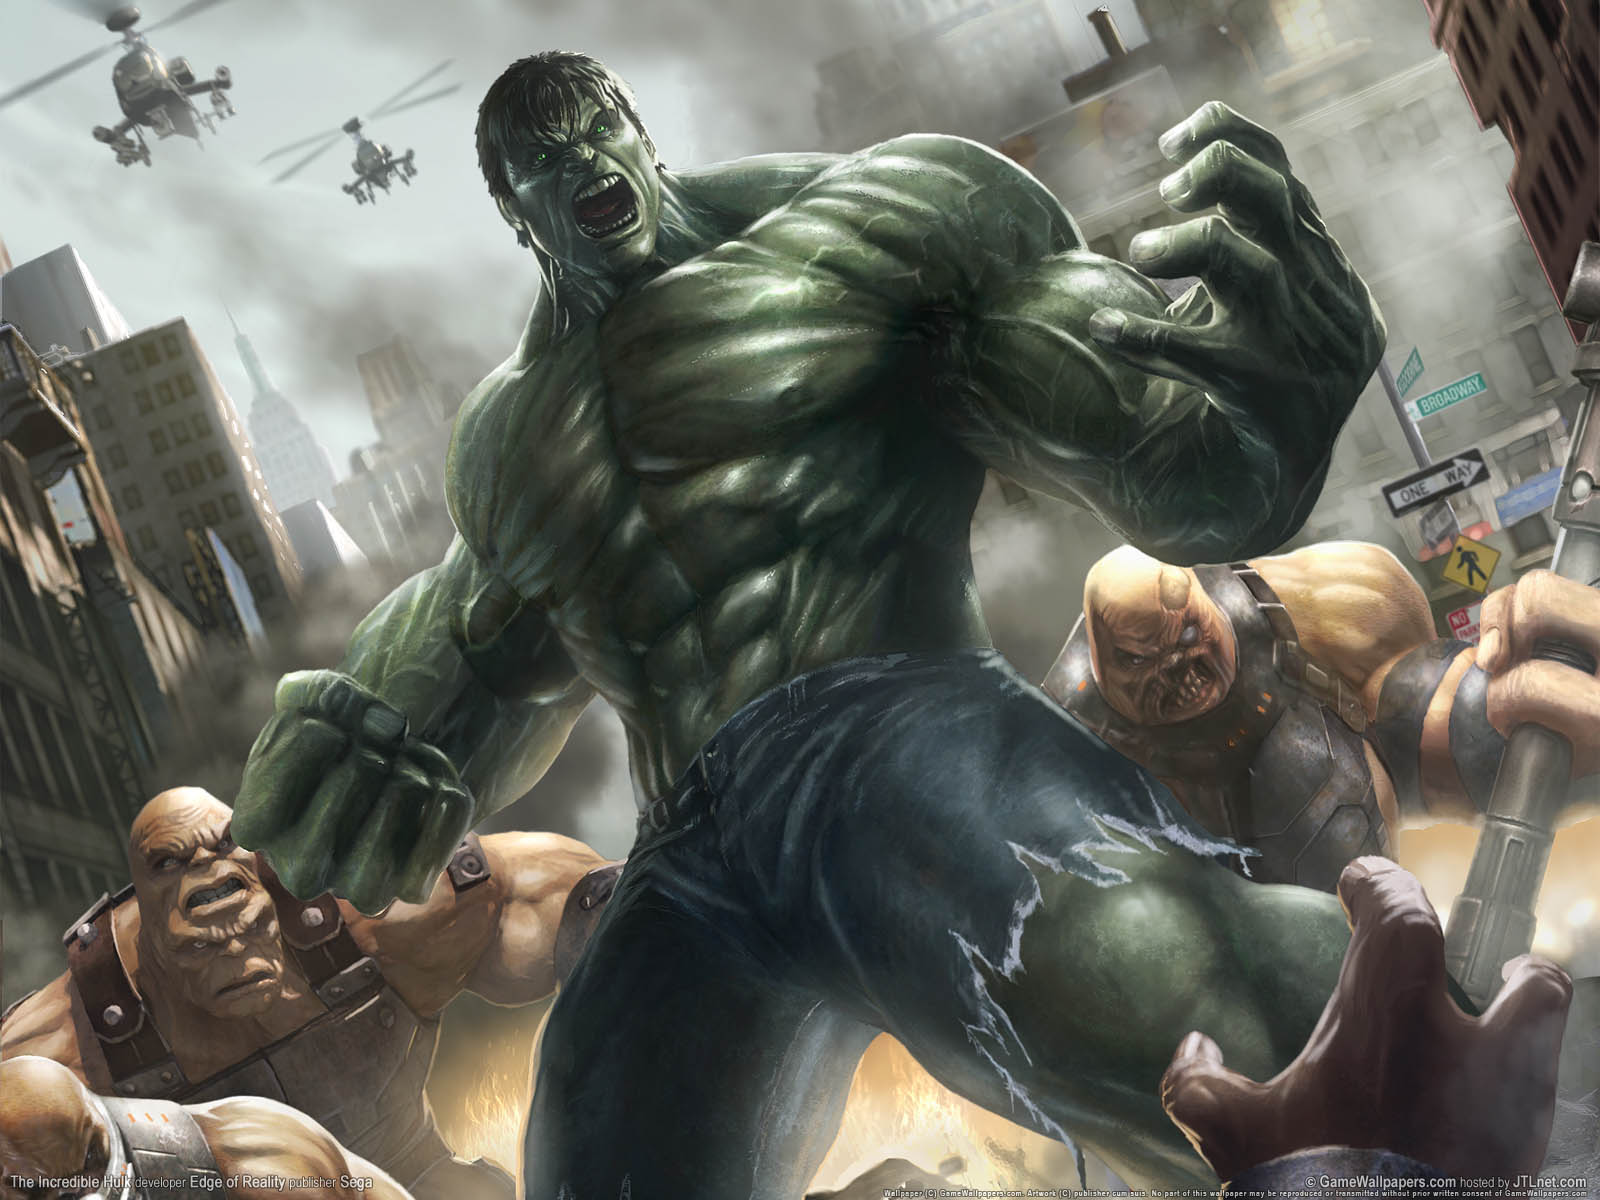 Incredible Hulk Wallpapers 4USkYcom 1600x1200